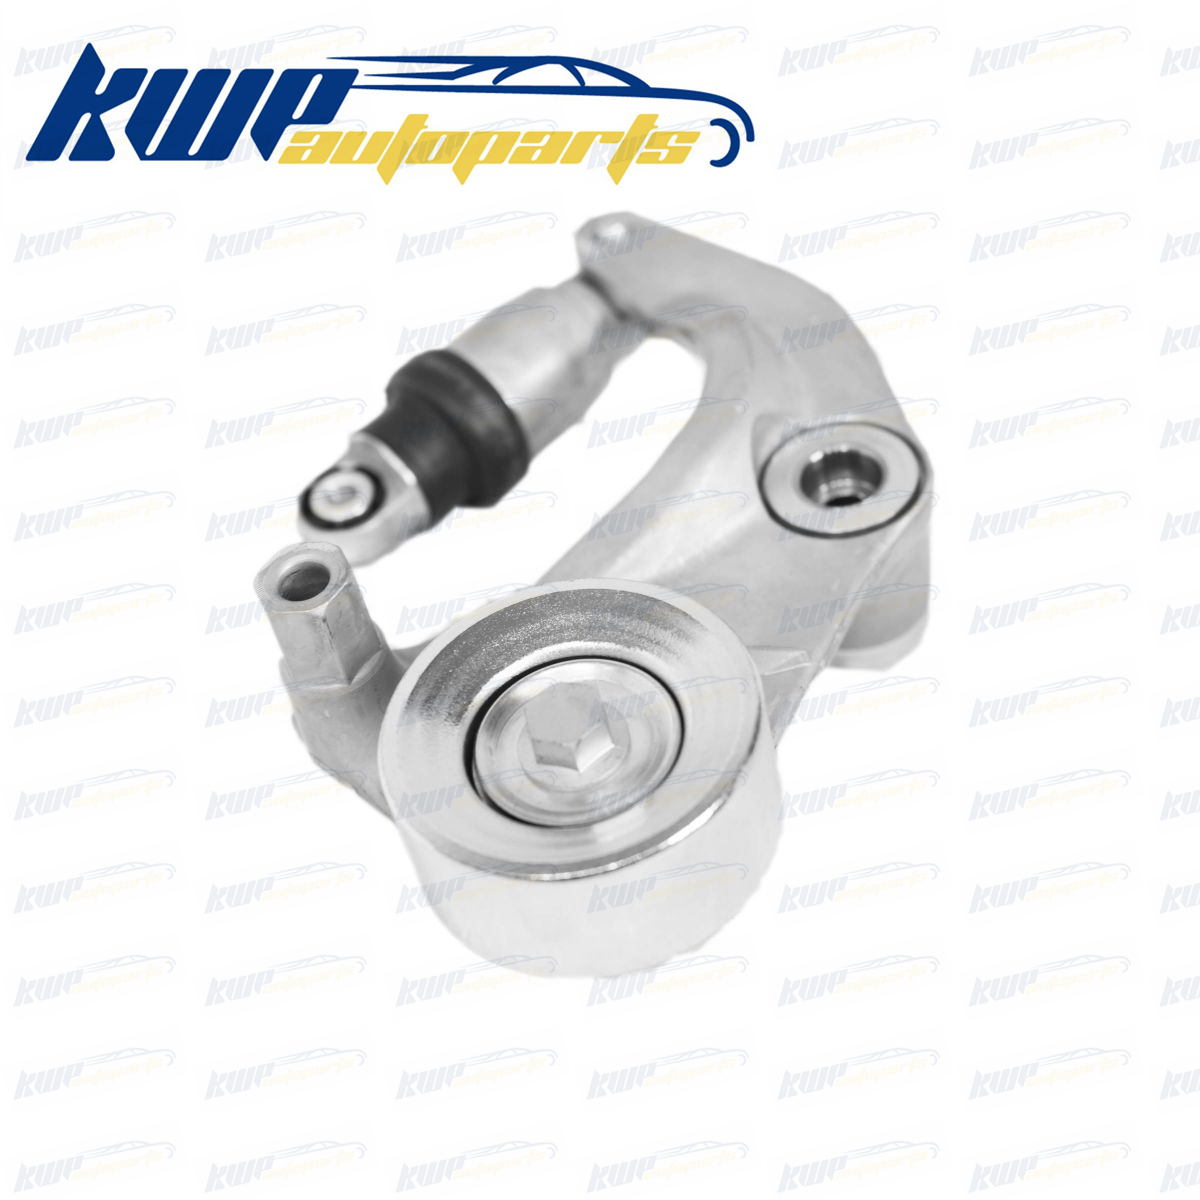 Drive belt tensioner for honda accord civic cr v 2 0 1 8 alternator r20a r18a